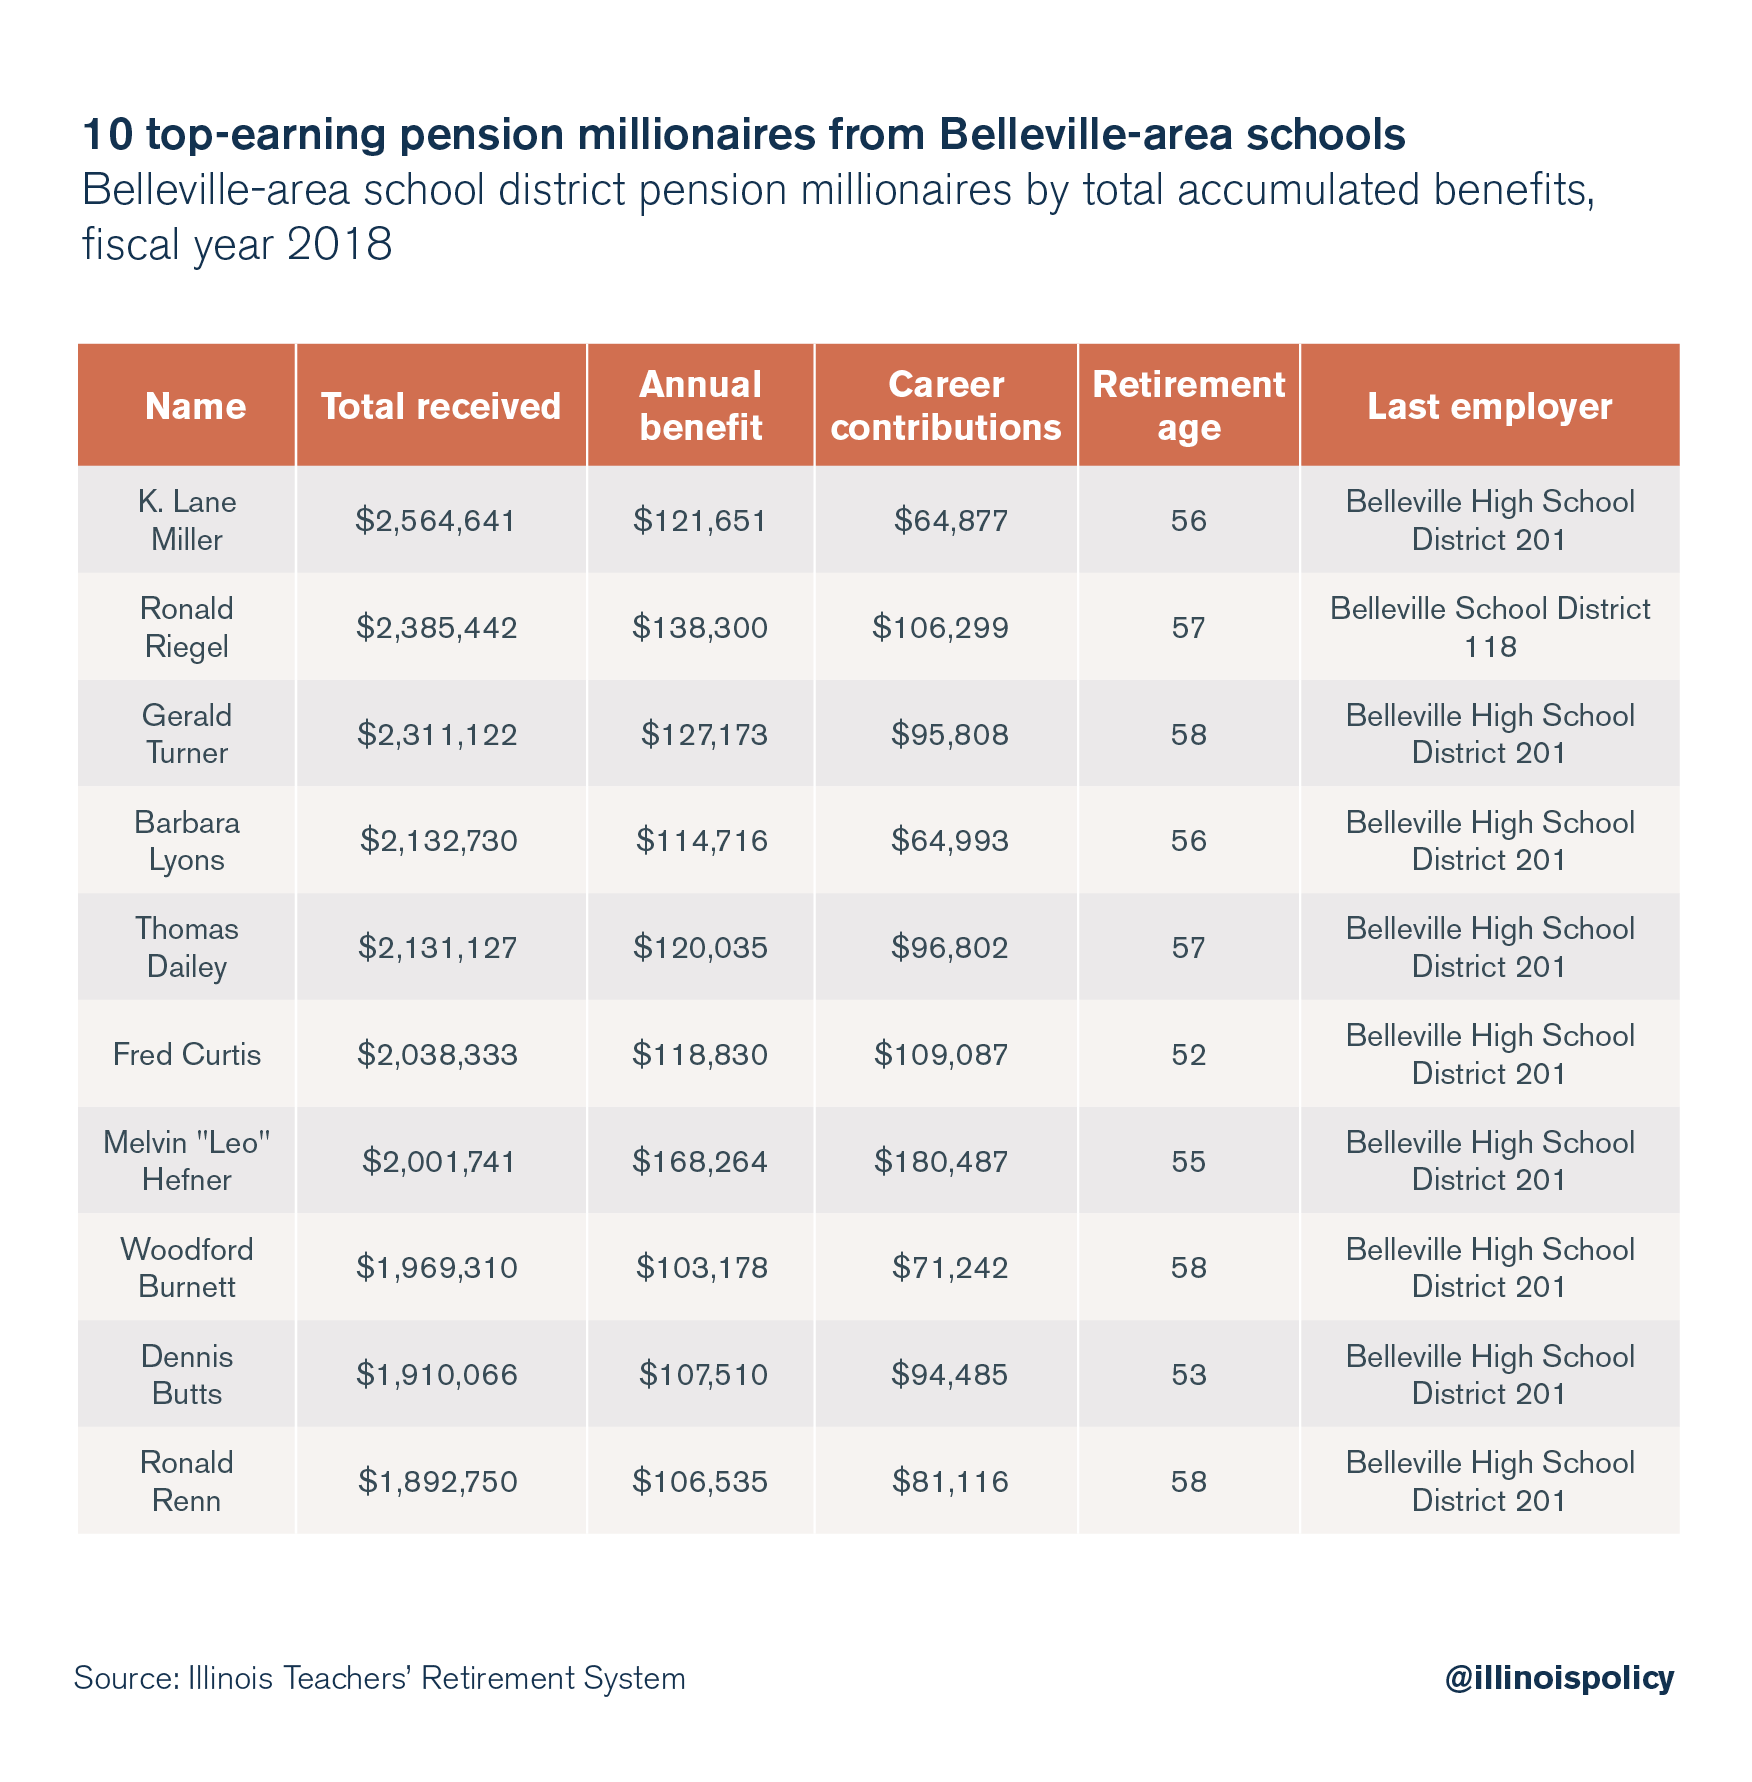 10 top-earning pension millionaire from Belleville area schools